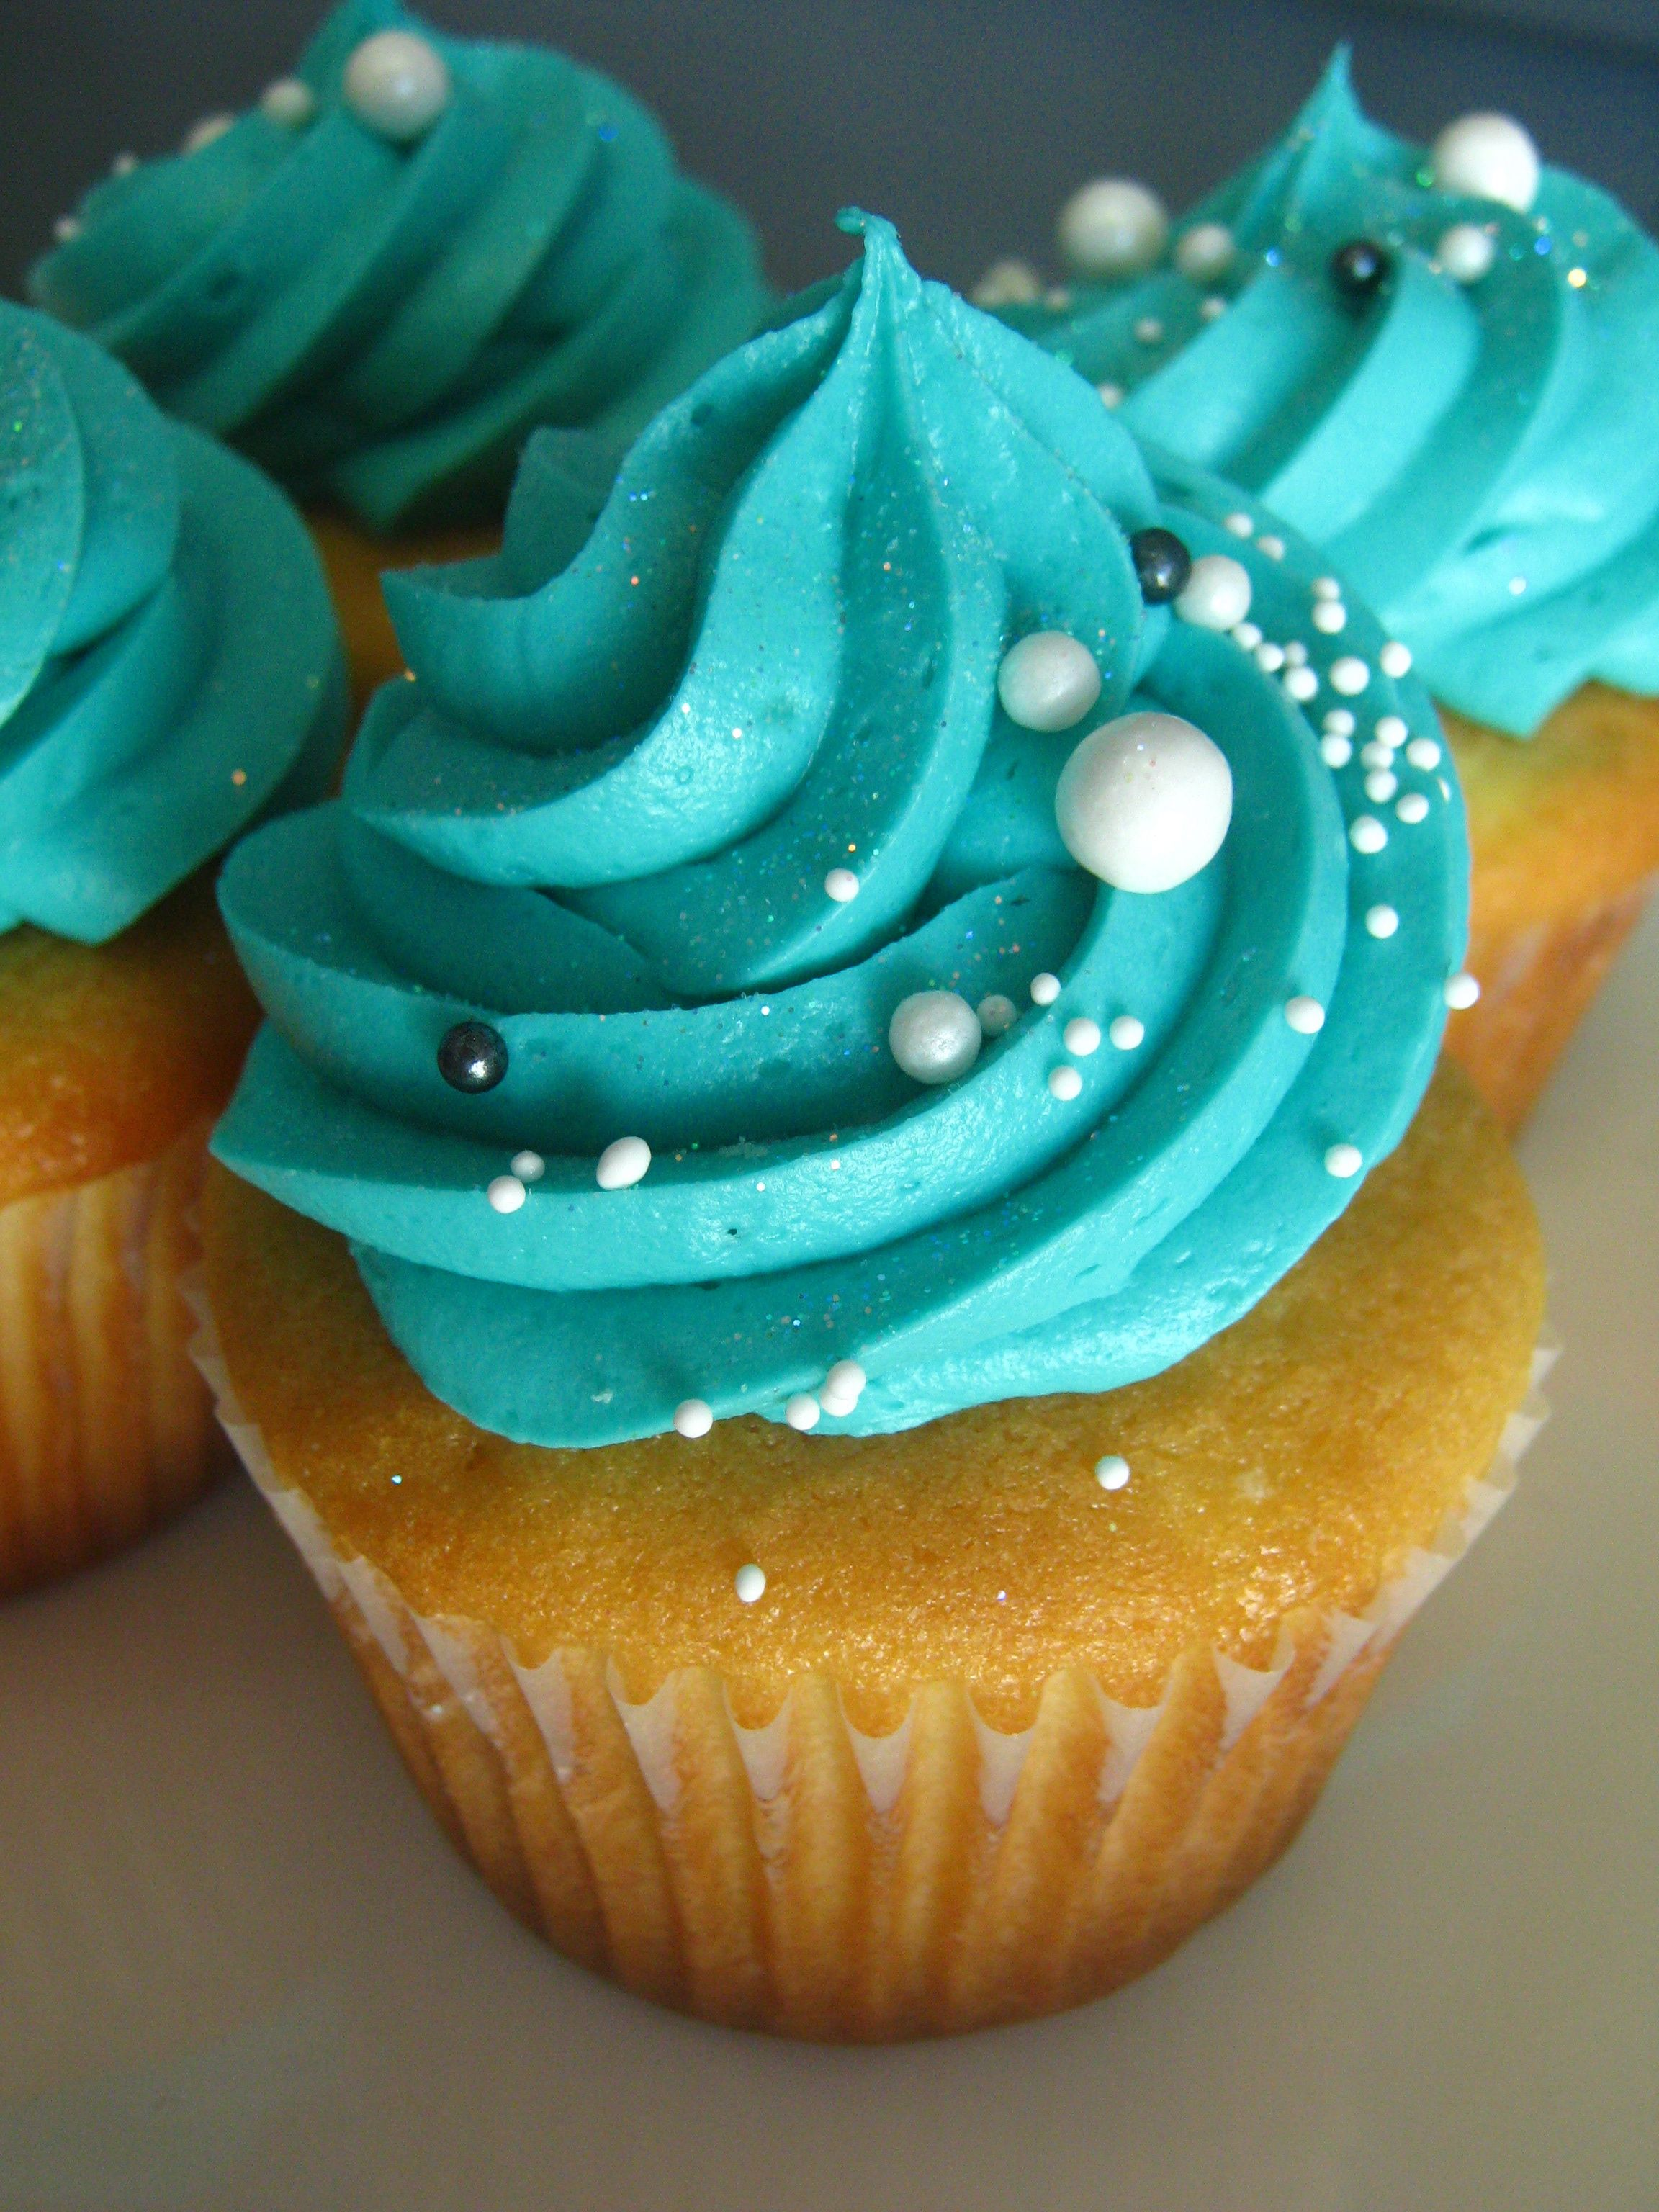 Tiffany & Co. inspired cupcakes for a beautiful bridal shower